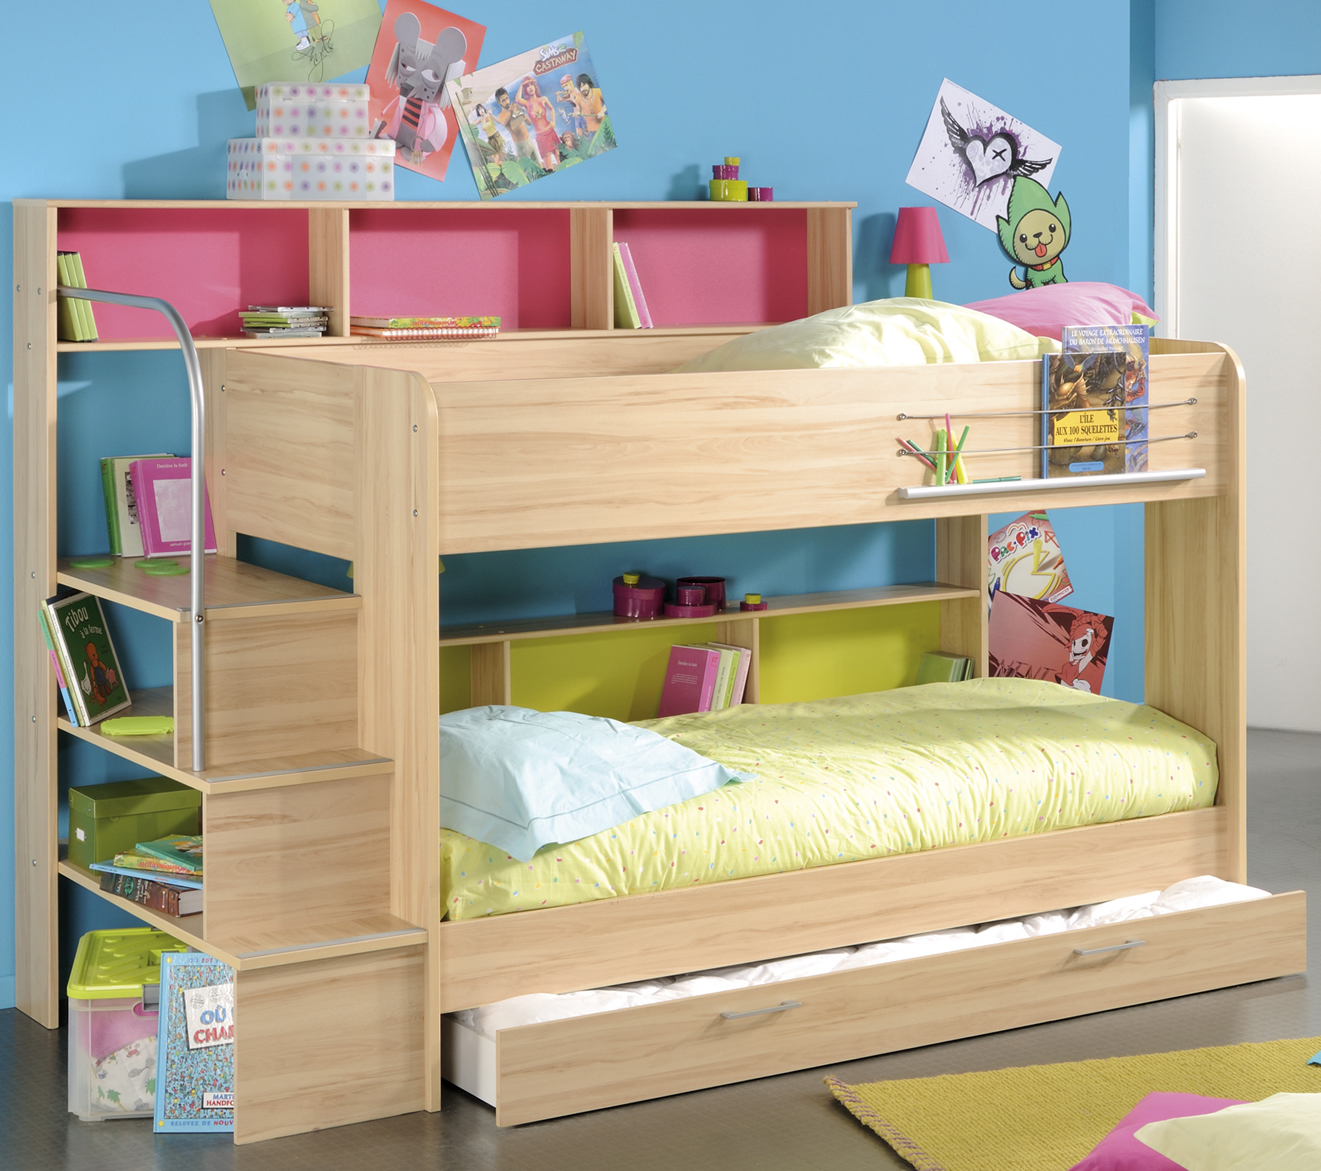 Thuka Bunk Bed Instructions